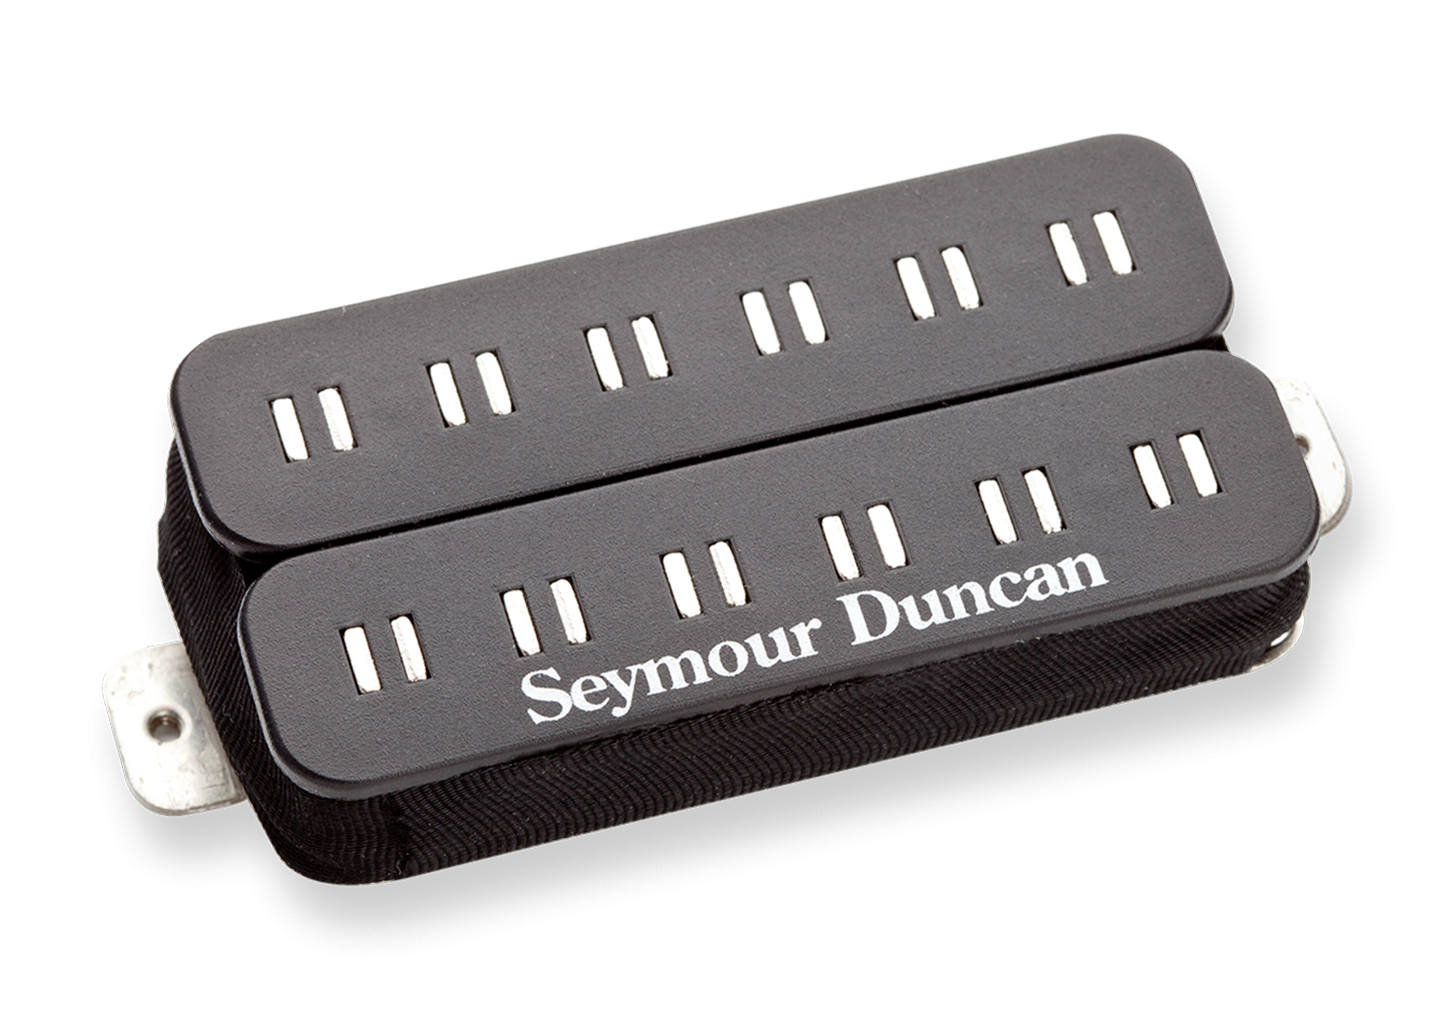 Seymour Duncan Parallel Axis Original Humbucker - PA-TB1N Neck